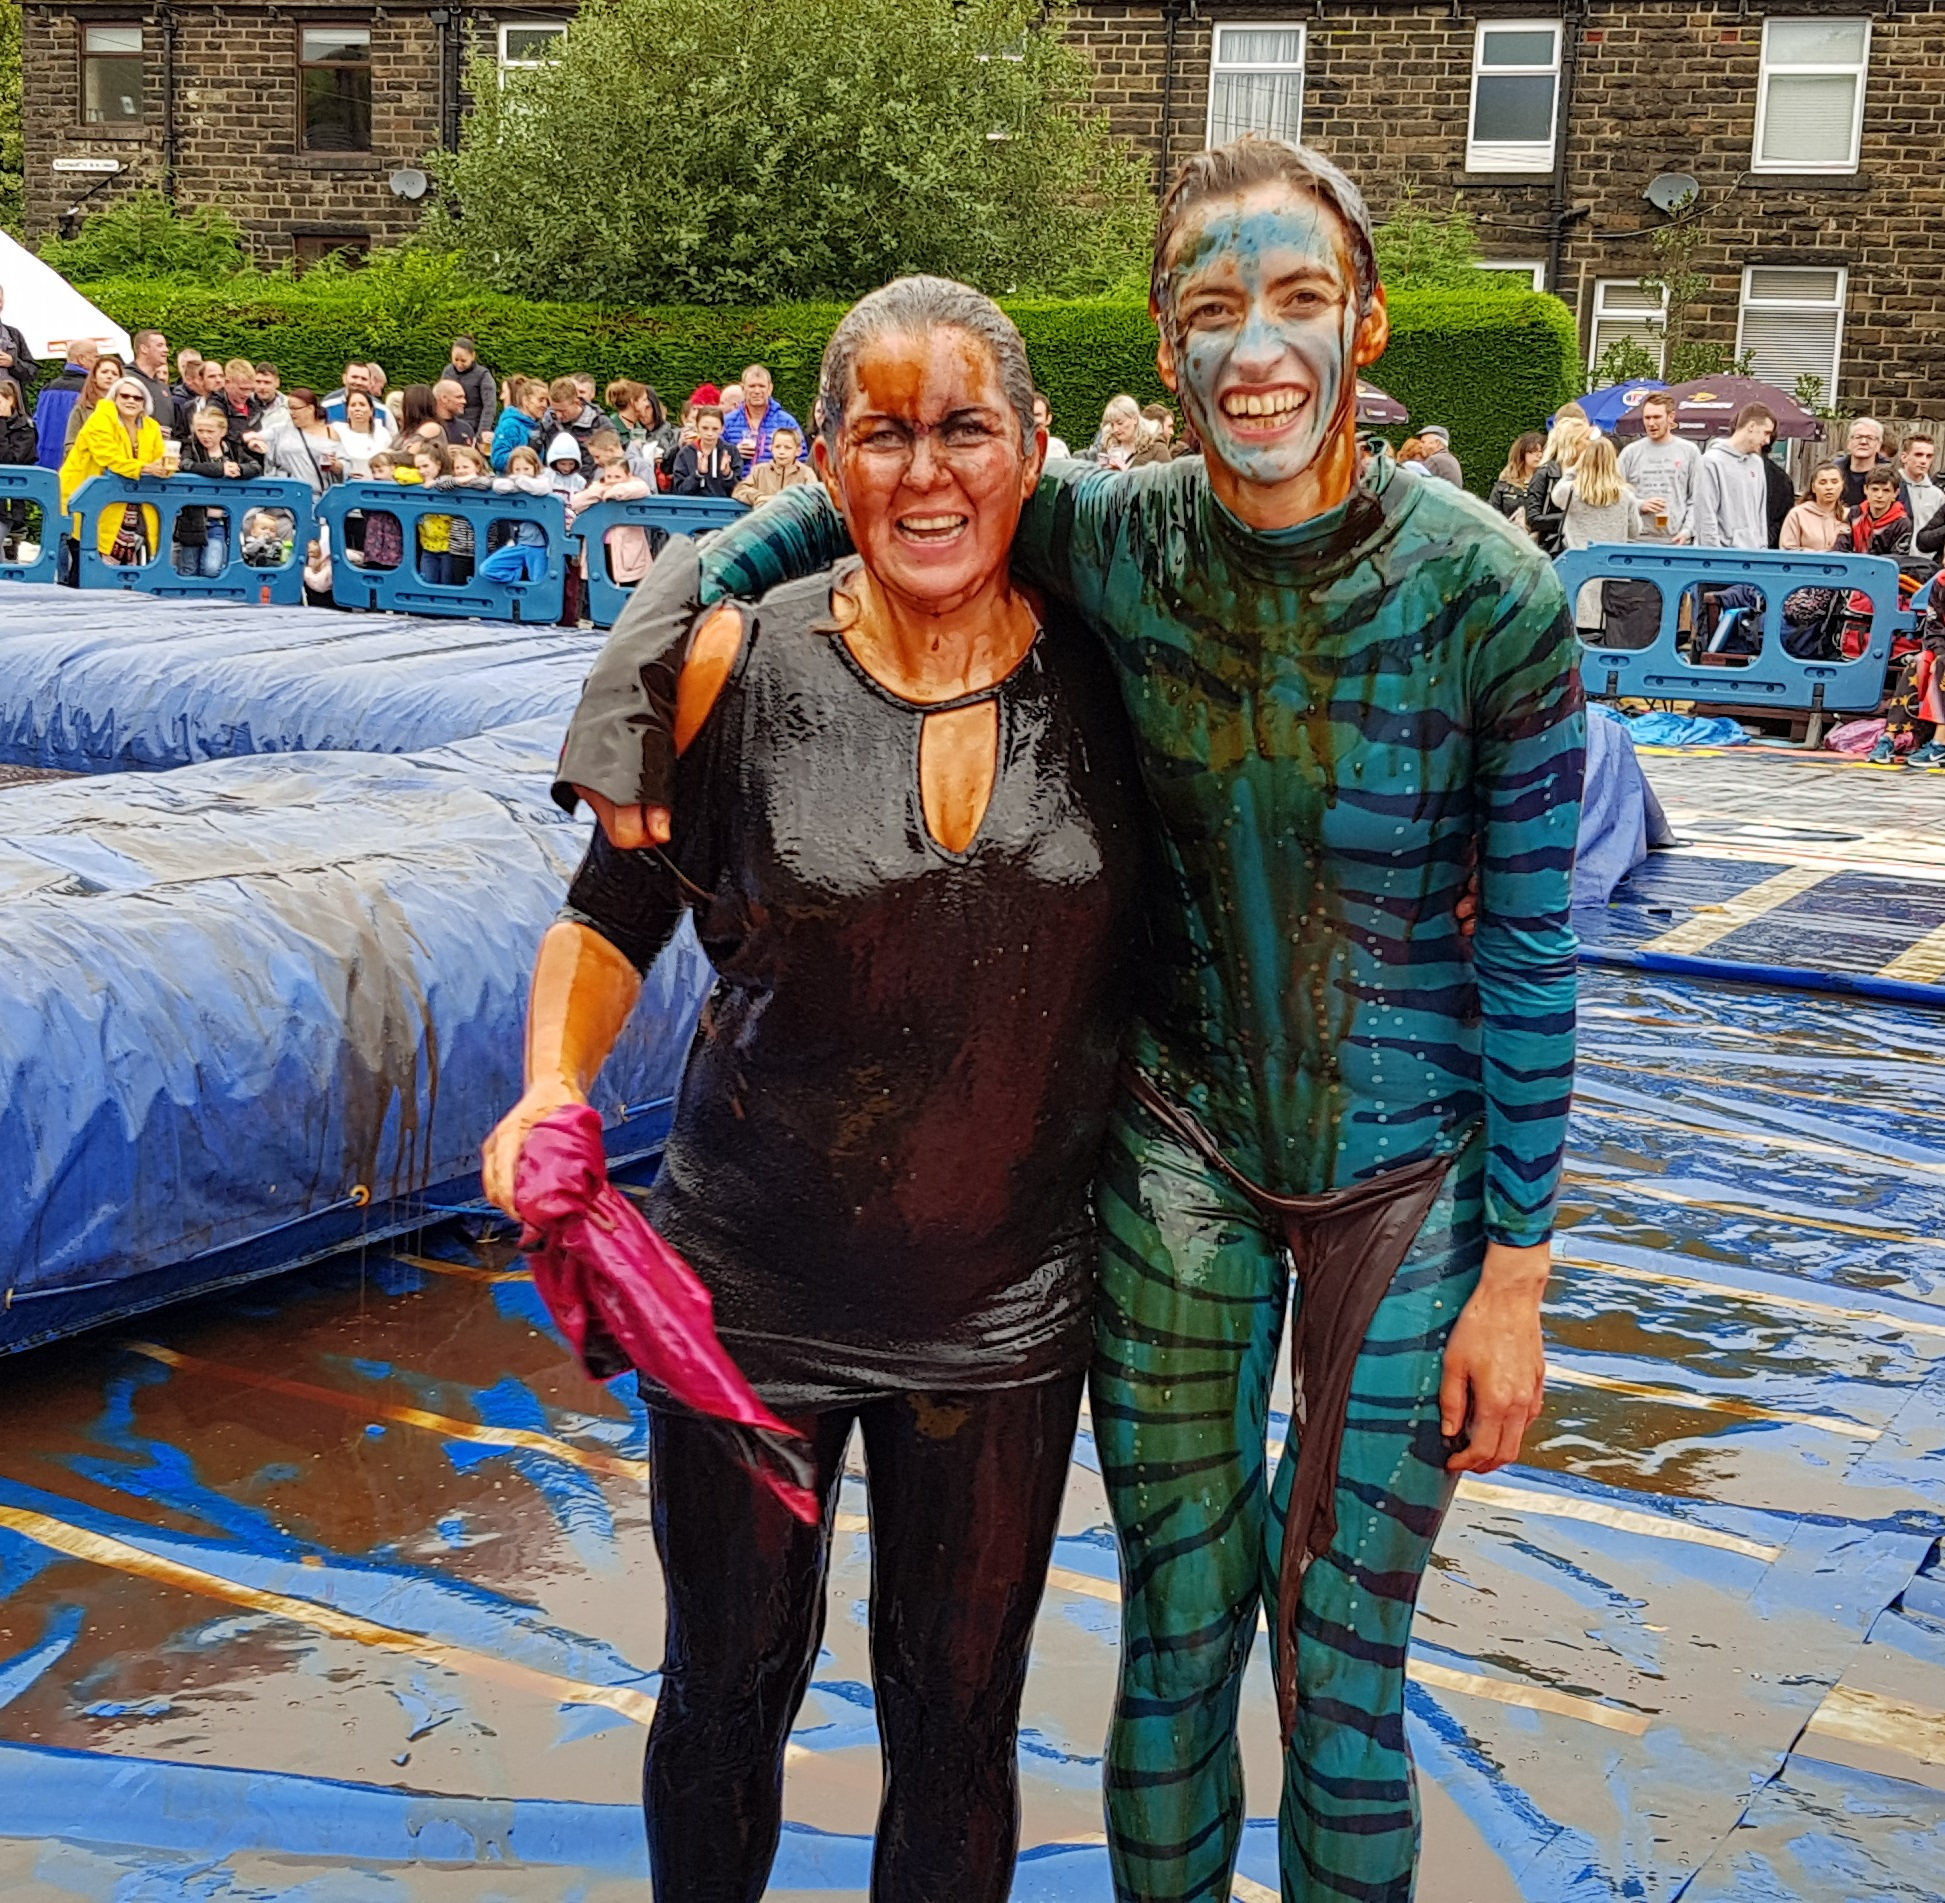 Gravy Wrestling 2018 - Bat Girl, Blue dab a dee 2